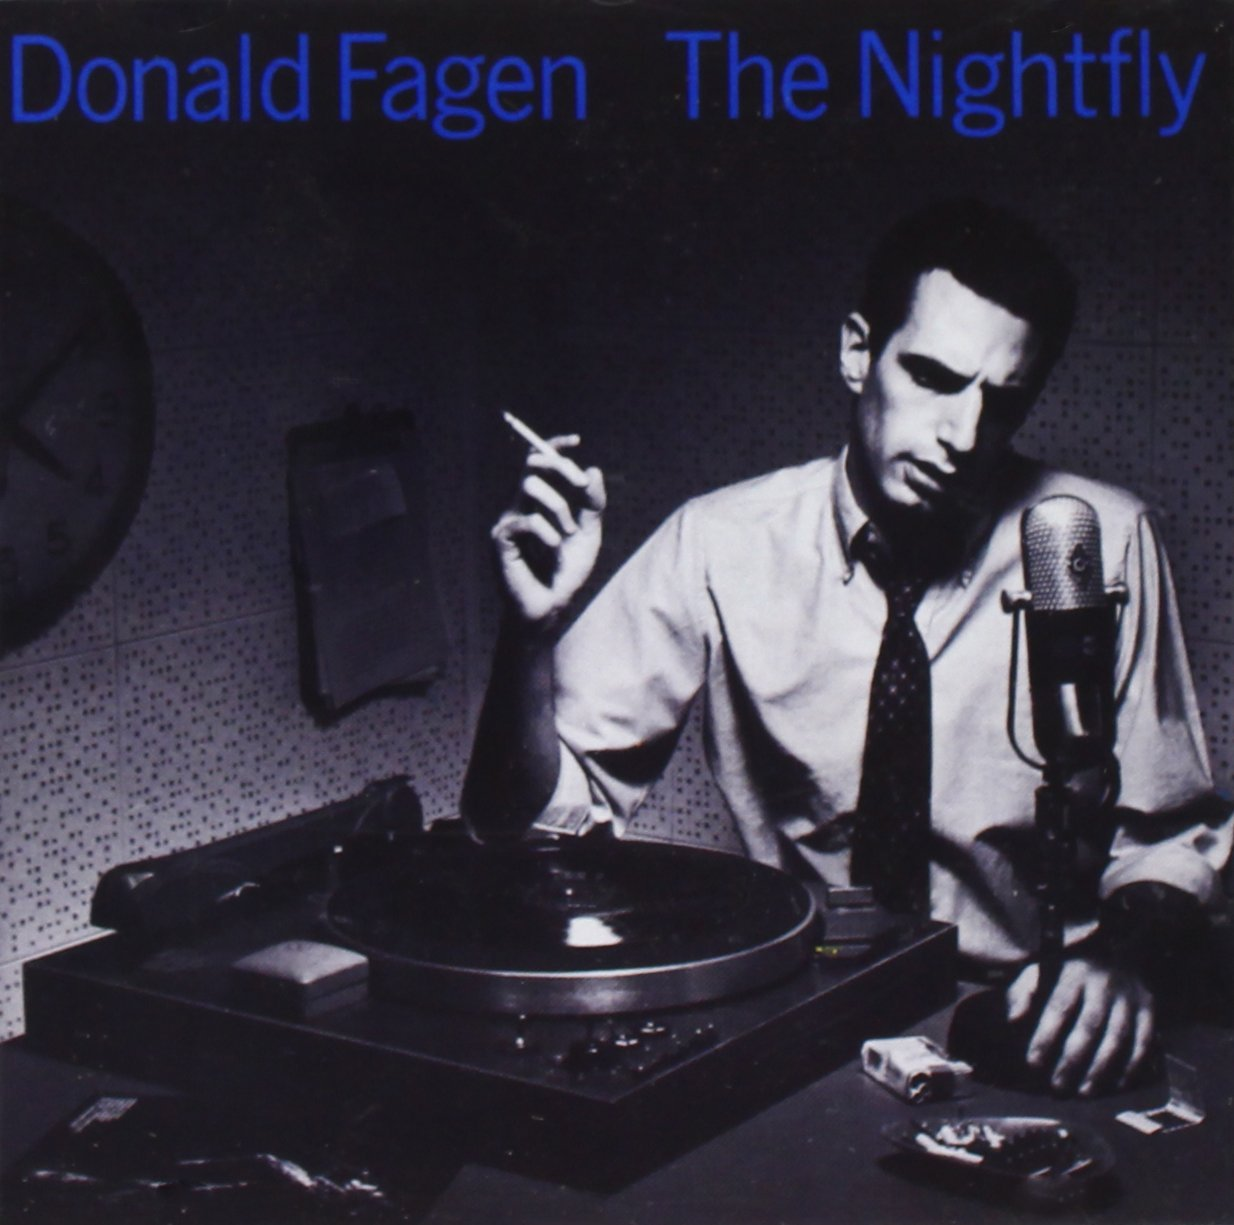 nancy-donald-fagen-the-nightfly